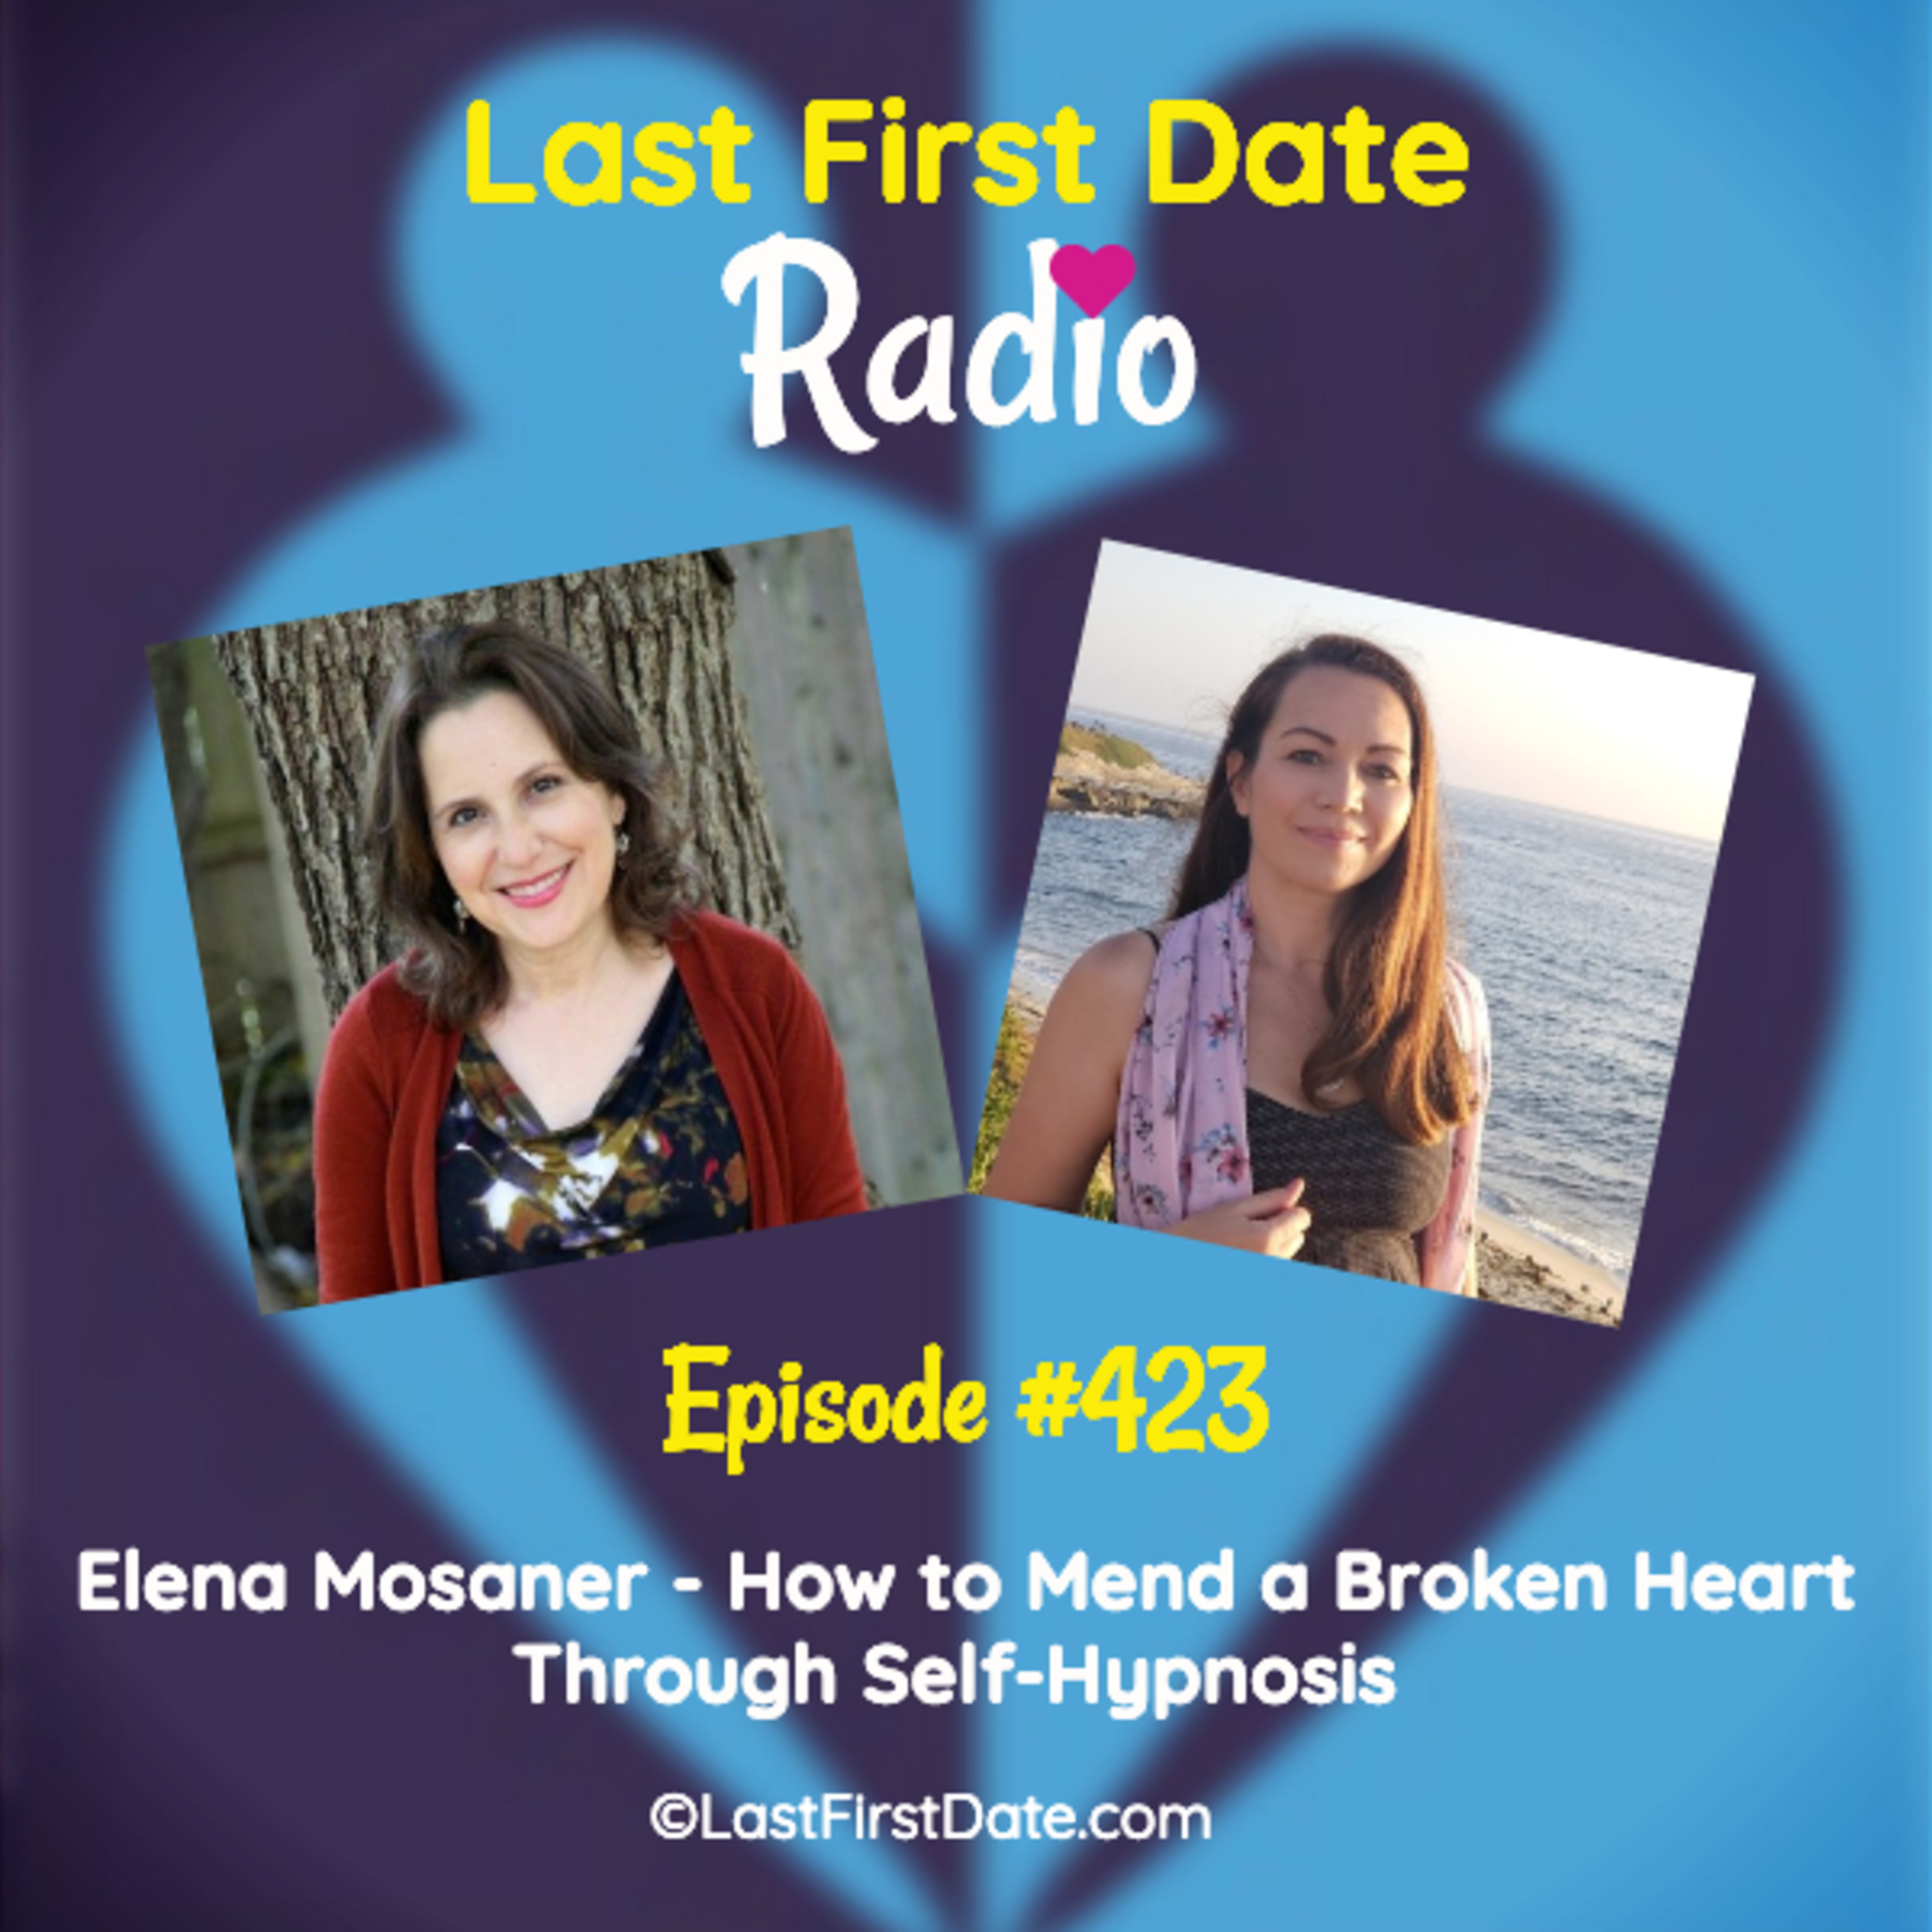 Last First Date Radio - EP 423: Elena Mosaner - How to Mend a Broken Heart Through Self-Hypnosis